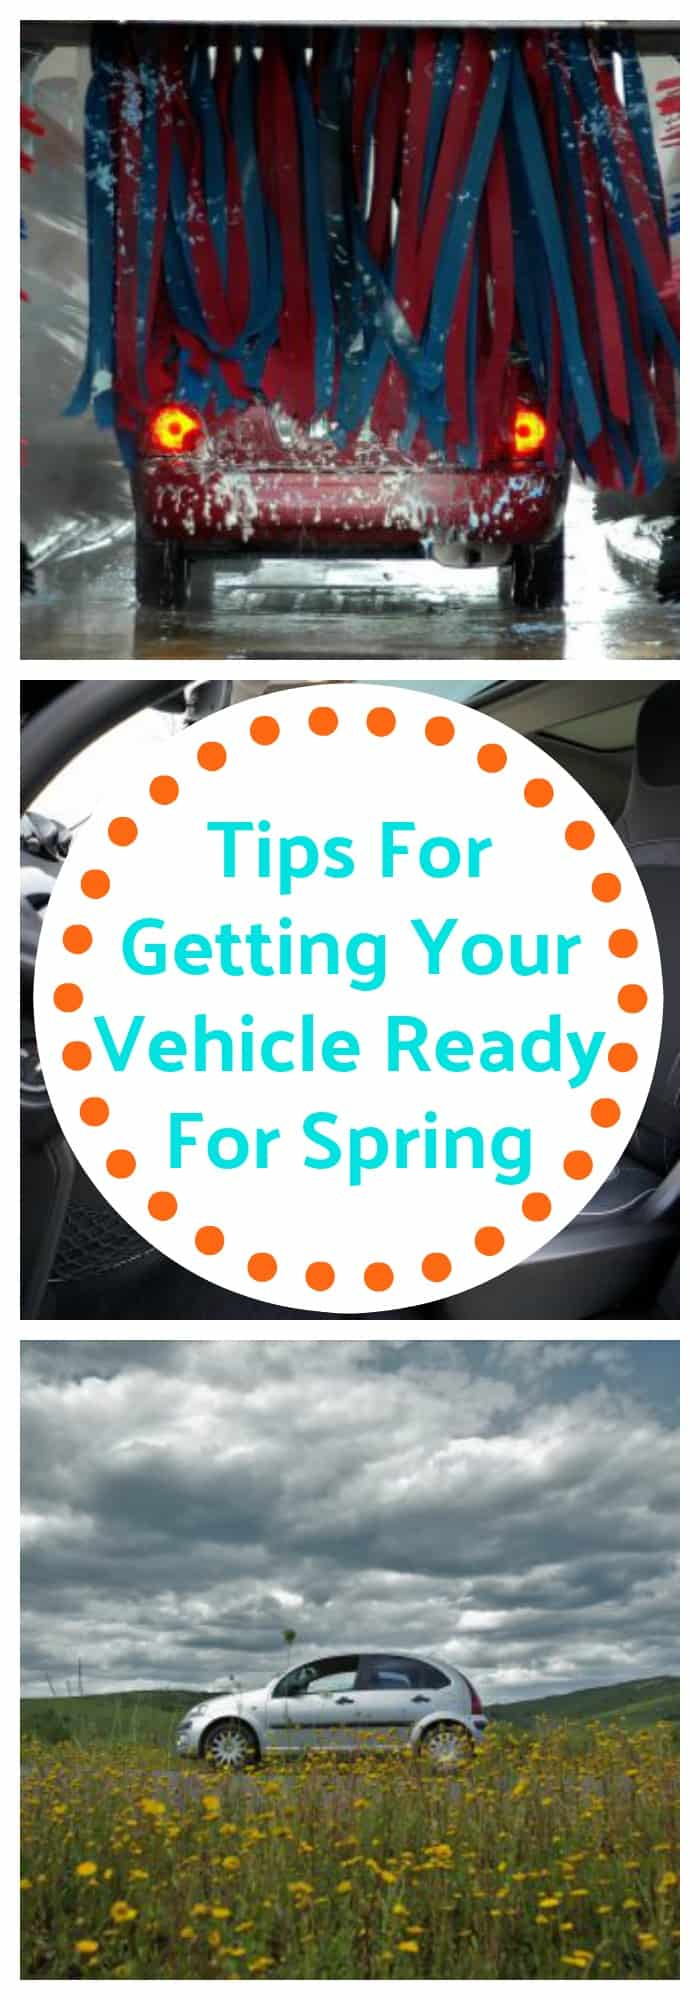 Organization--Tips For Getting Your Vehicle Ready For Spring--The Organized Mom